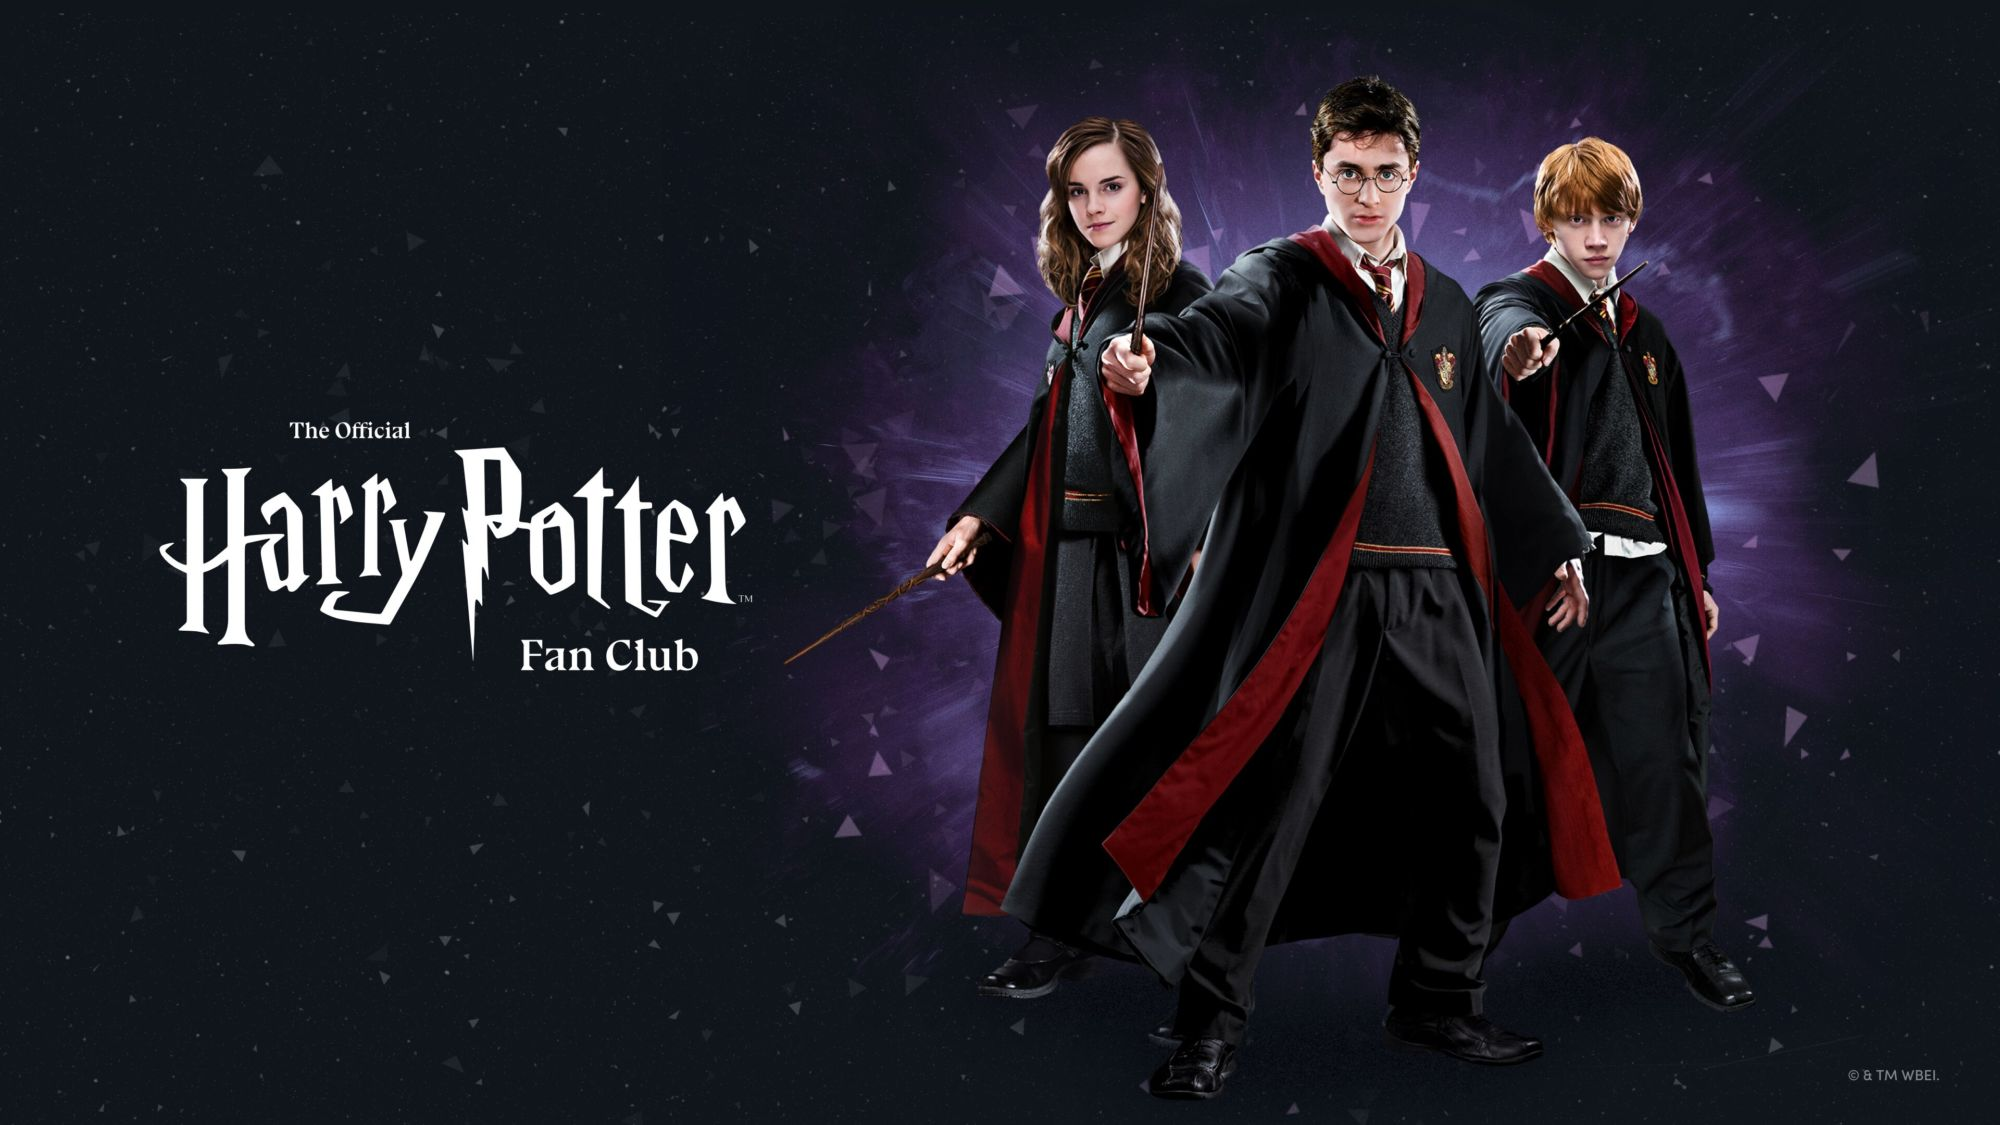 """Harry Potter"" - Wizarding World Digital Introduces The Official Harry Potter Fan Club"